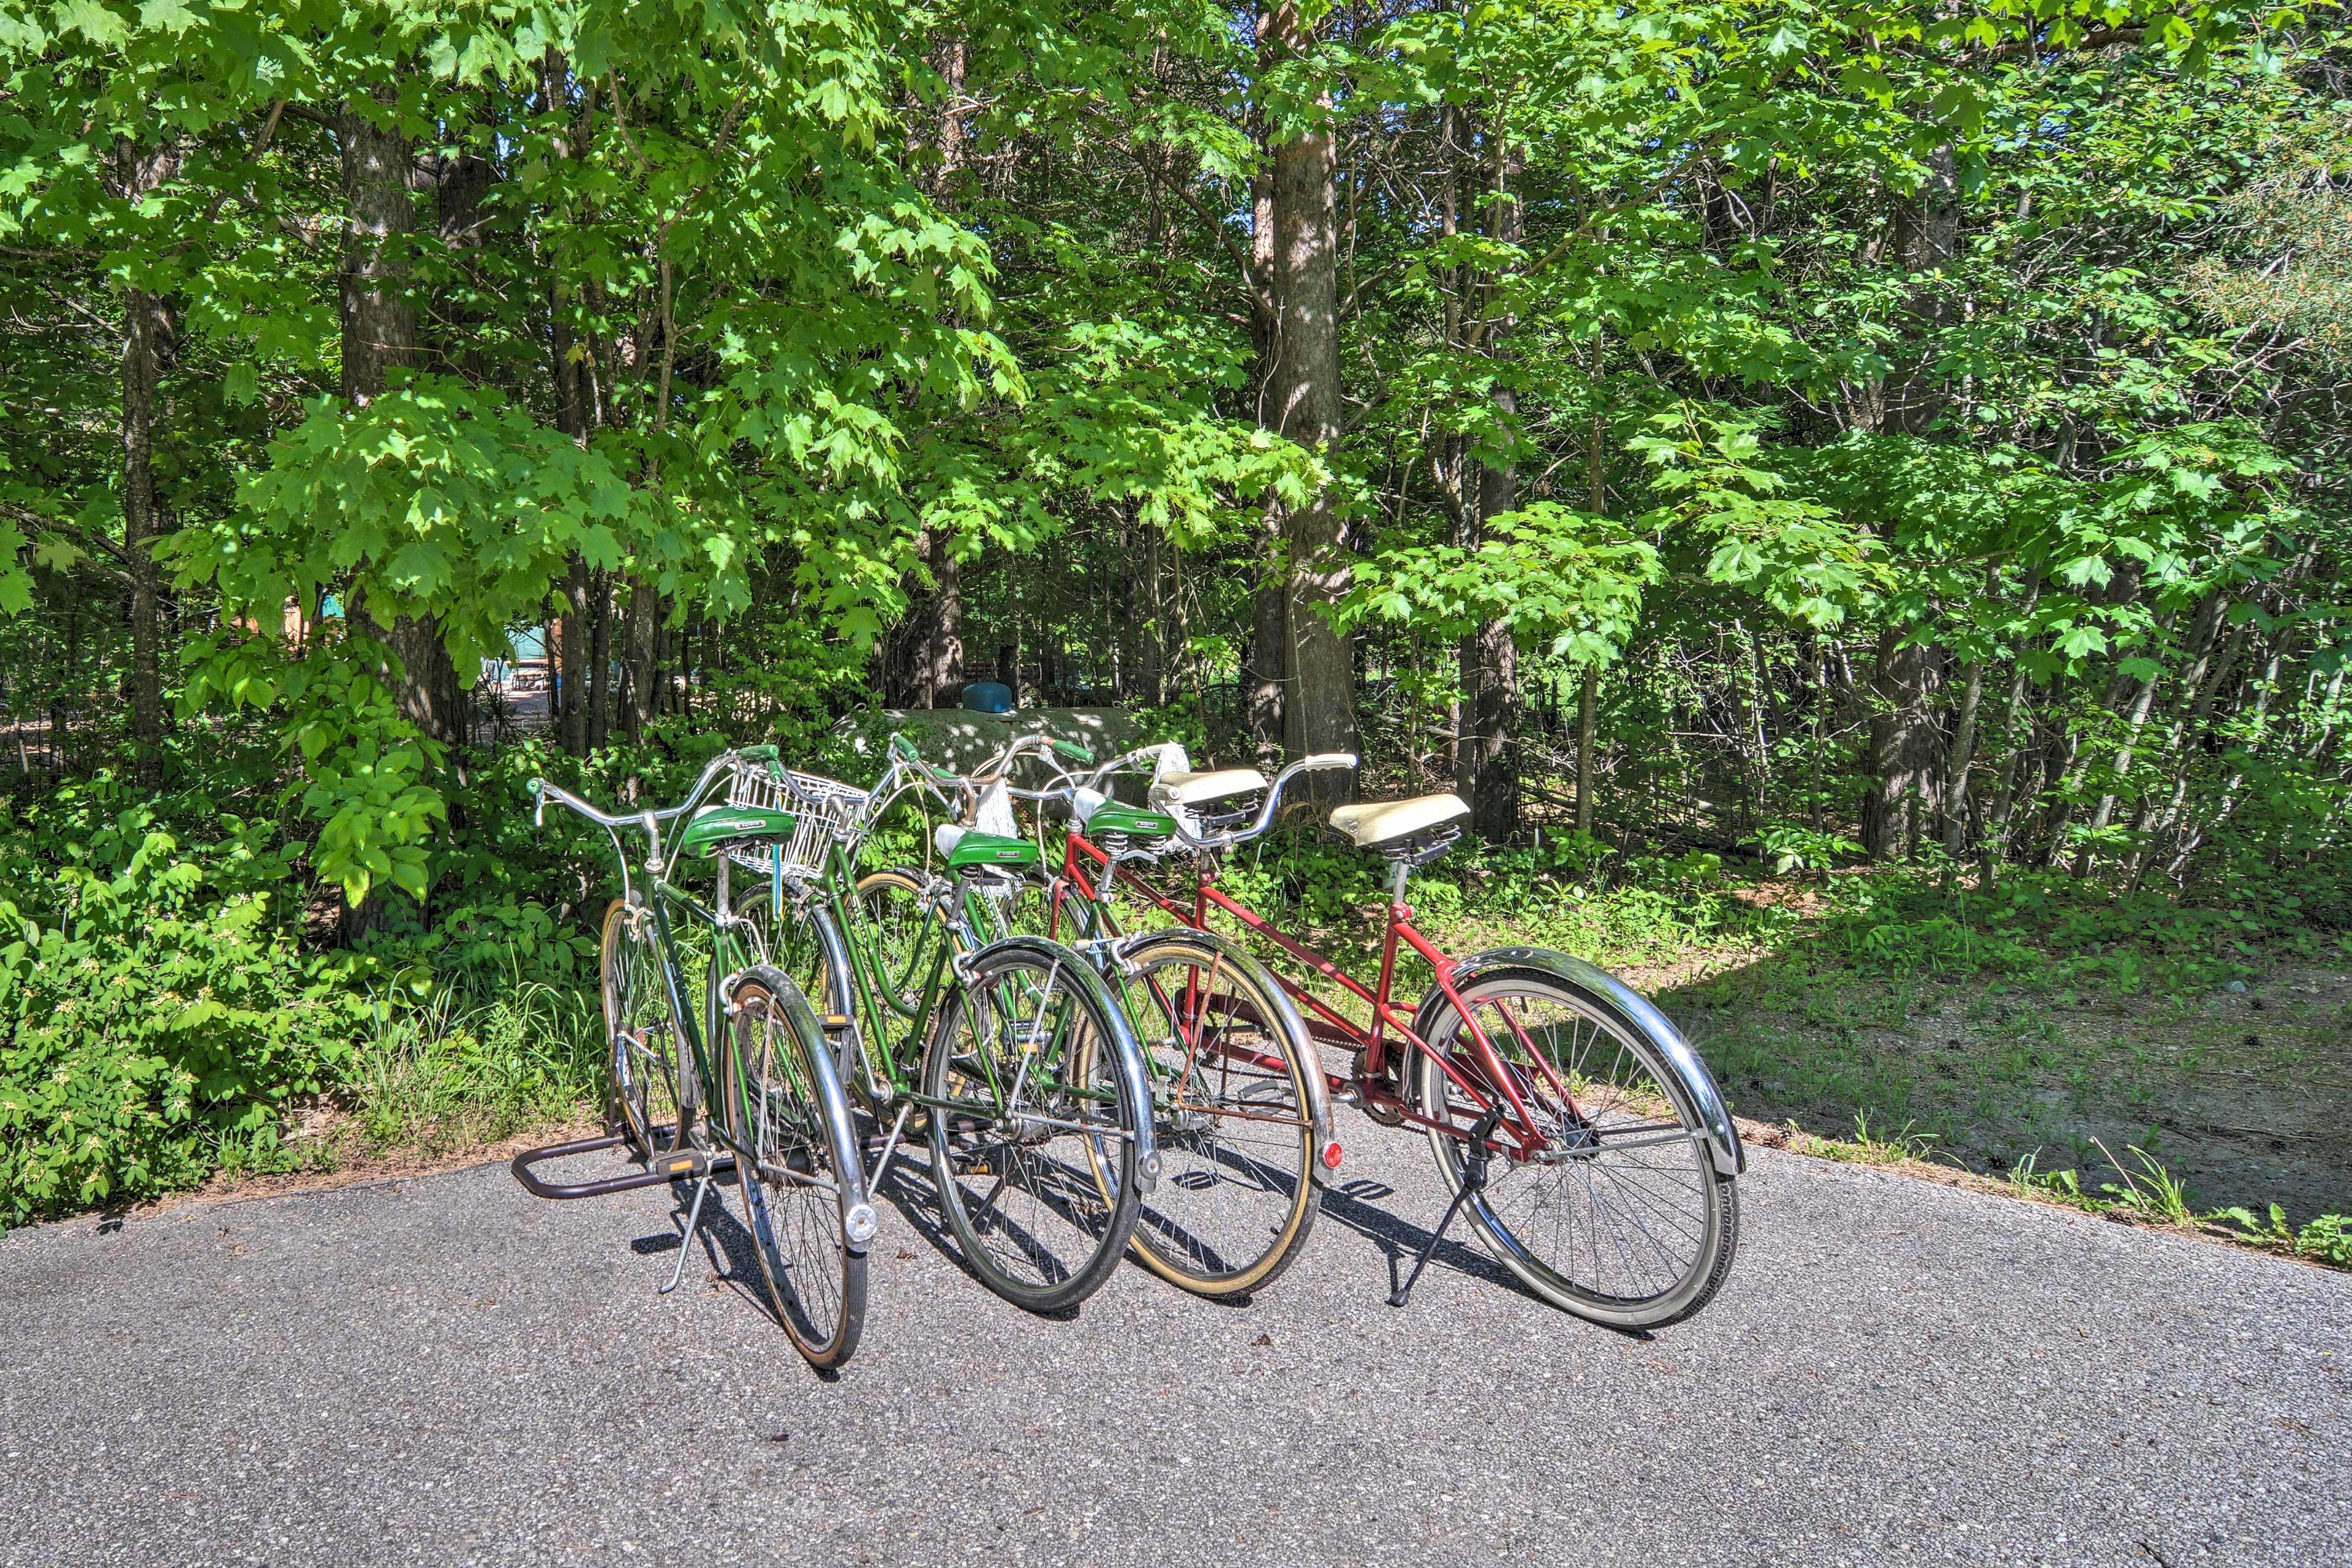 Go for a spin on the bikes!